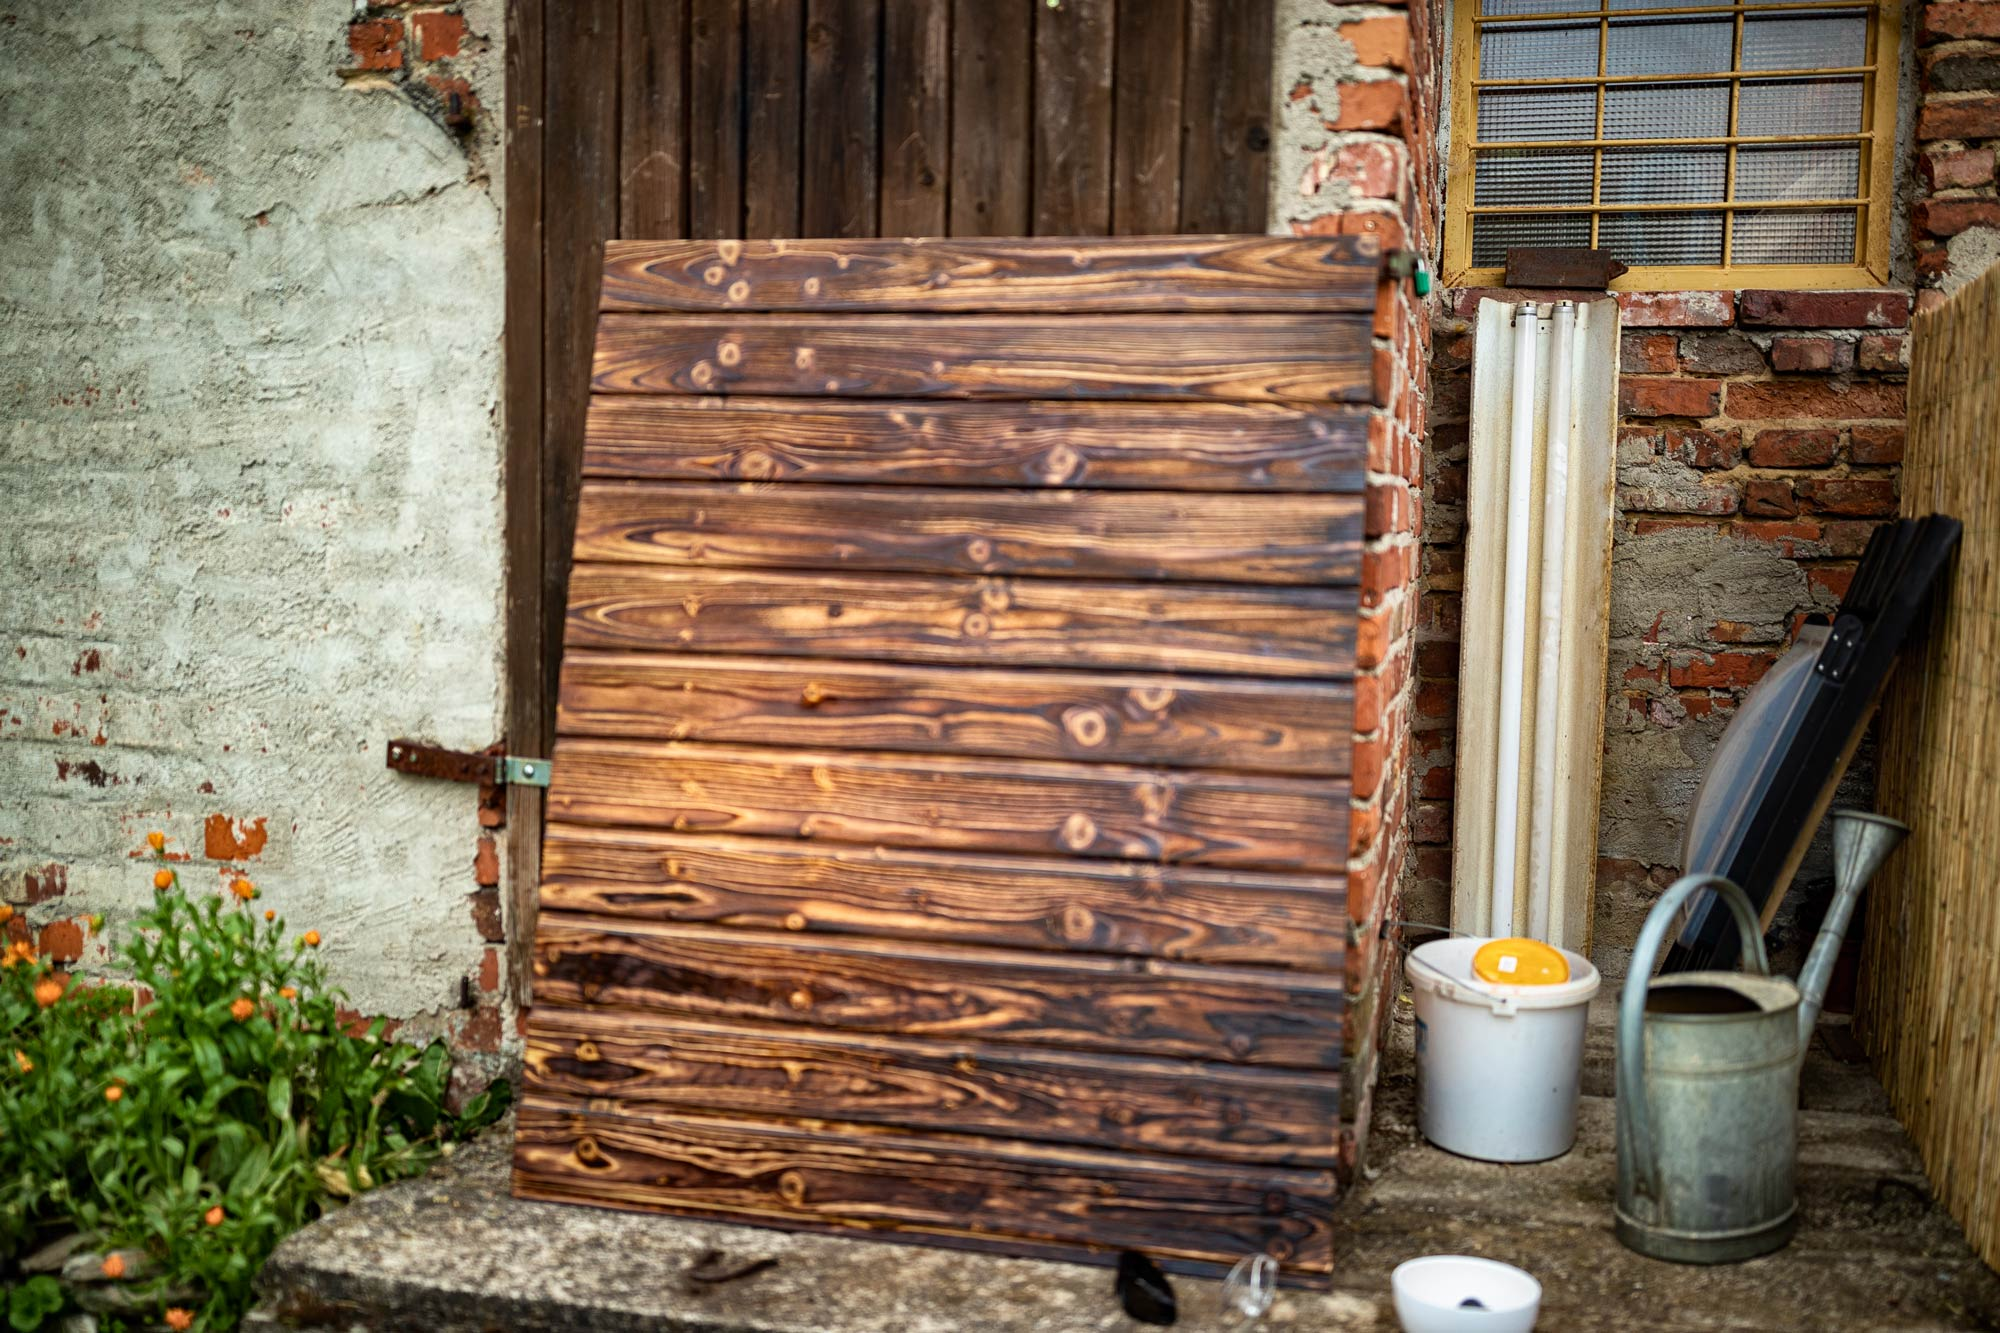 Building photographic backgrounds. A Painted wooden desks leaned against a wall in a garden.